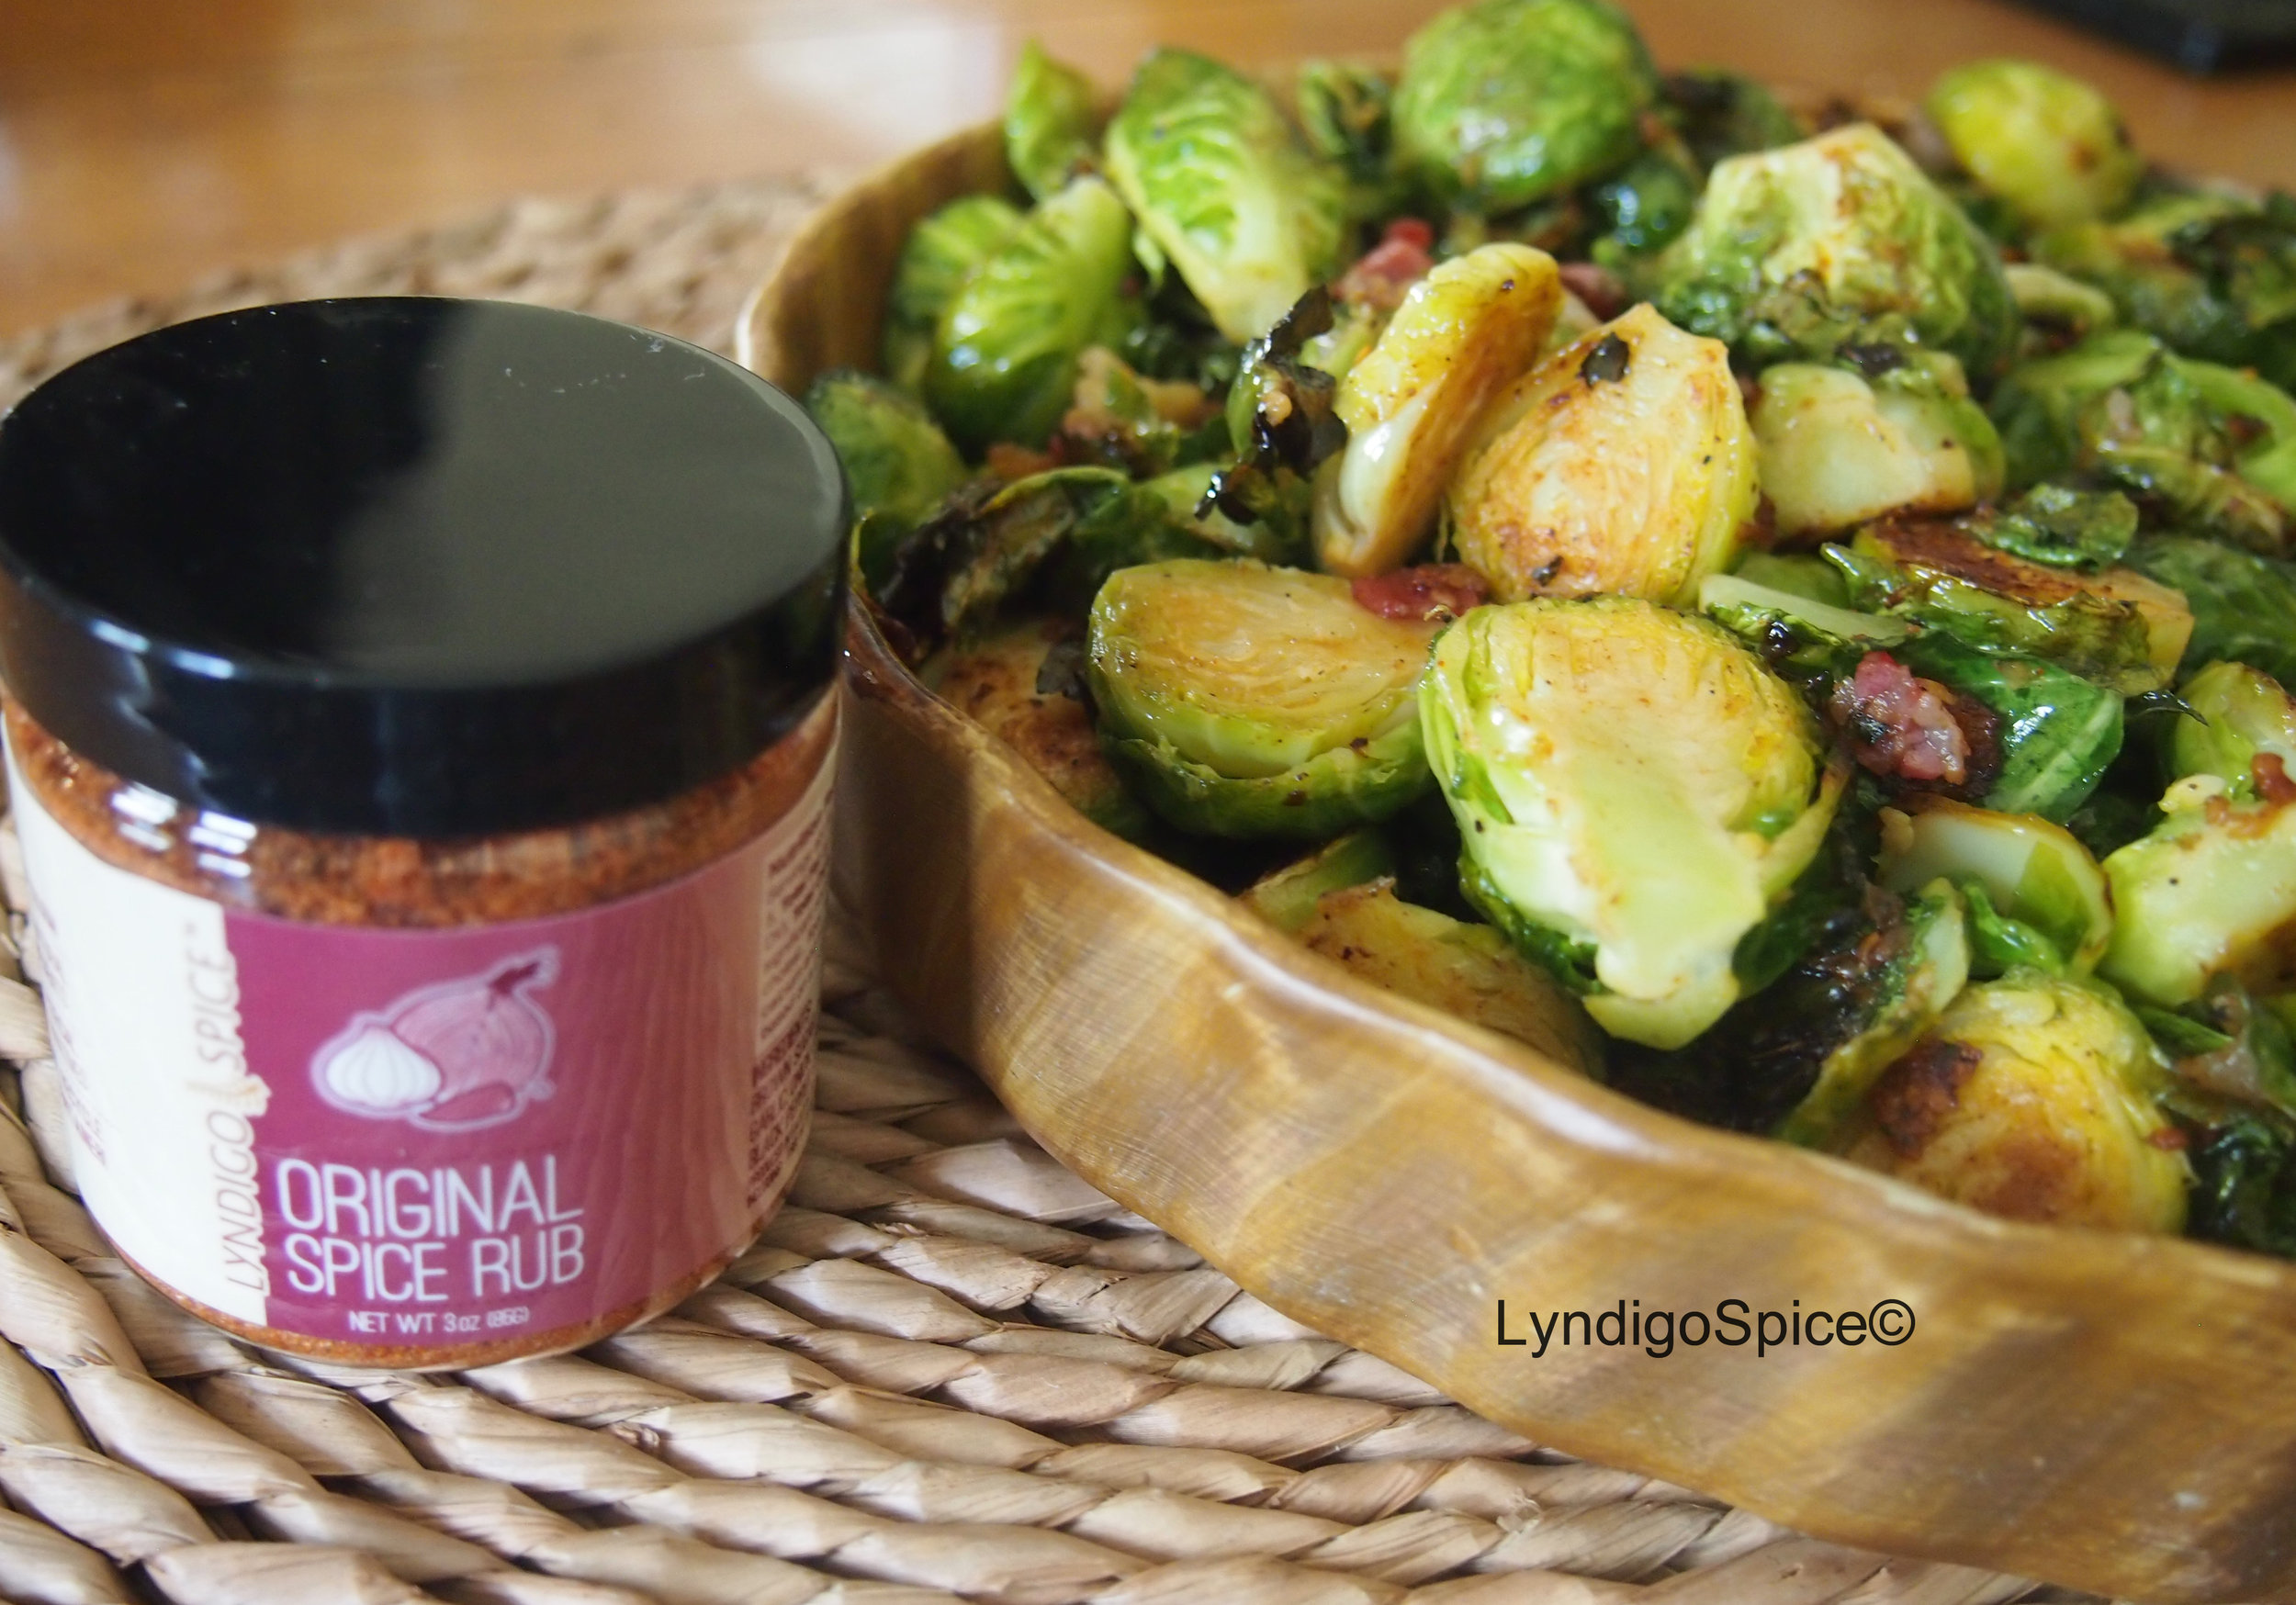 Lyndigo Spice® Roasted Brussel Sprouts